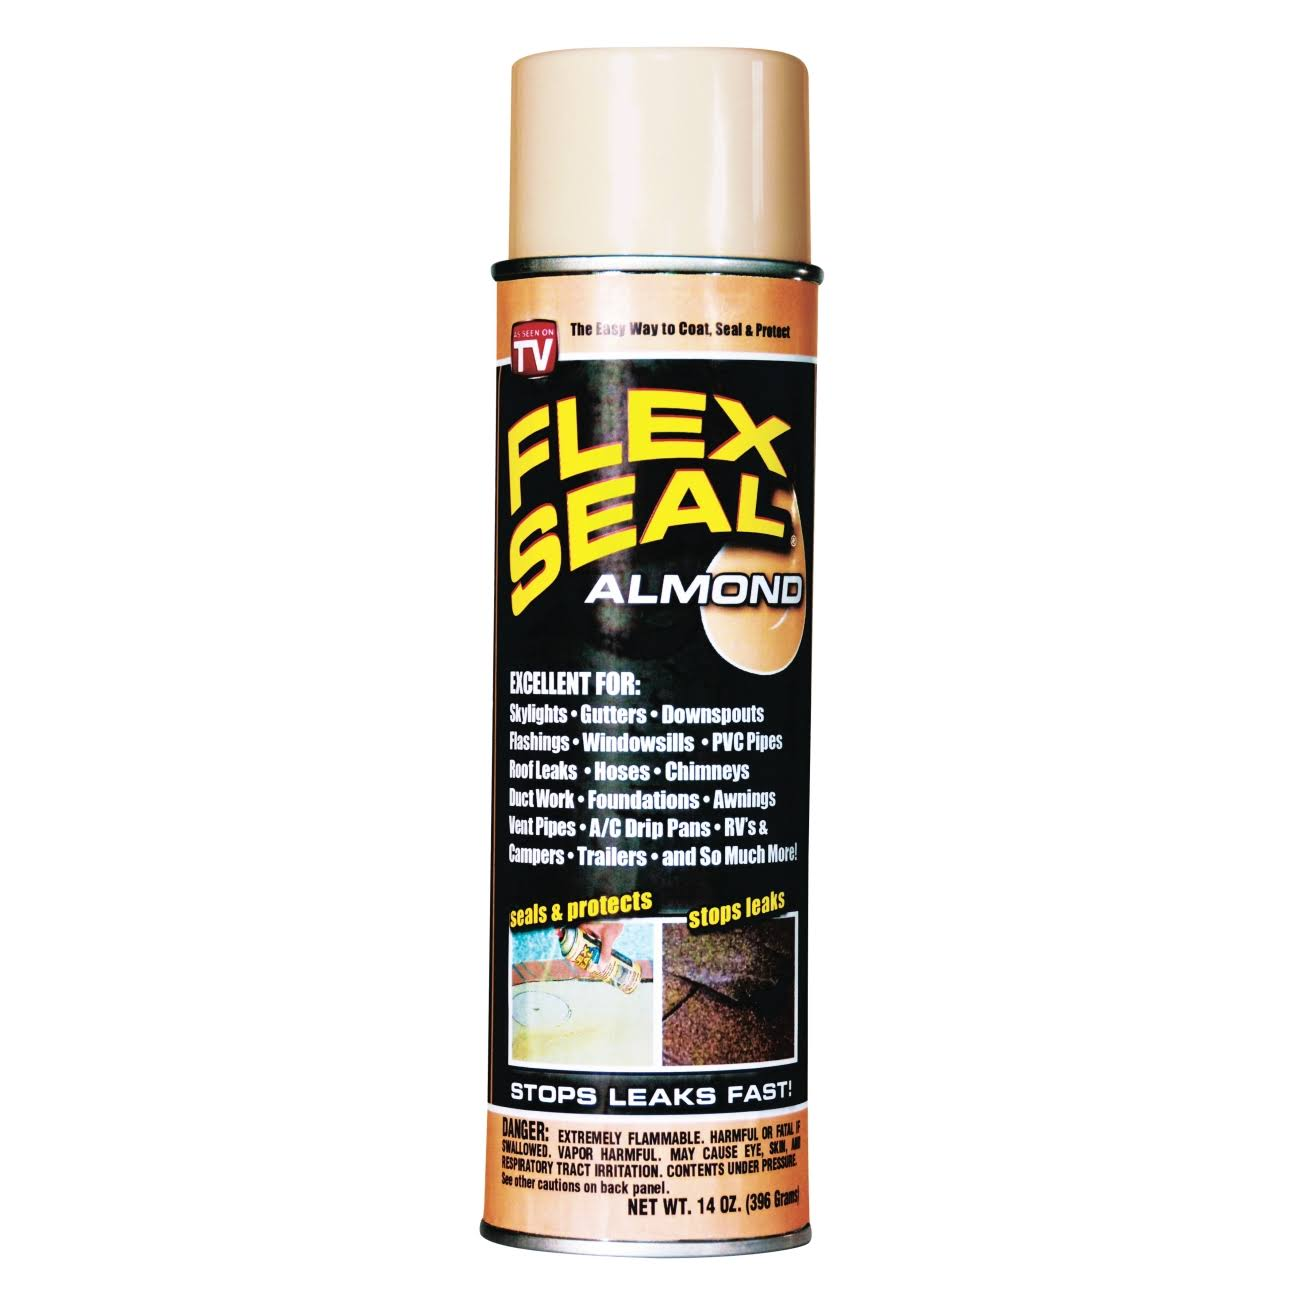 Flex Seal Spray On Sealant Weatherproof Caulking - Brown, 14oz